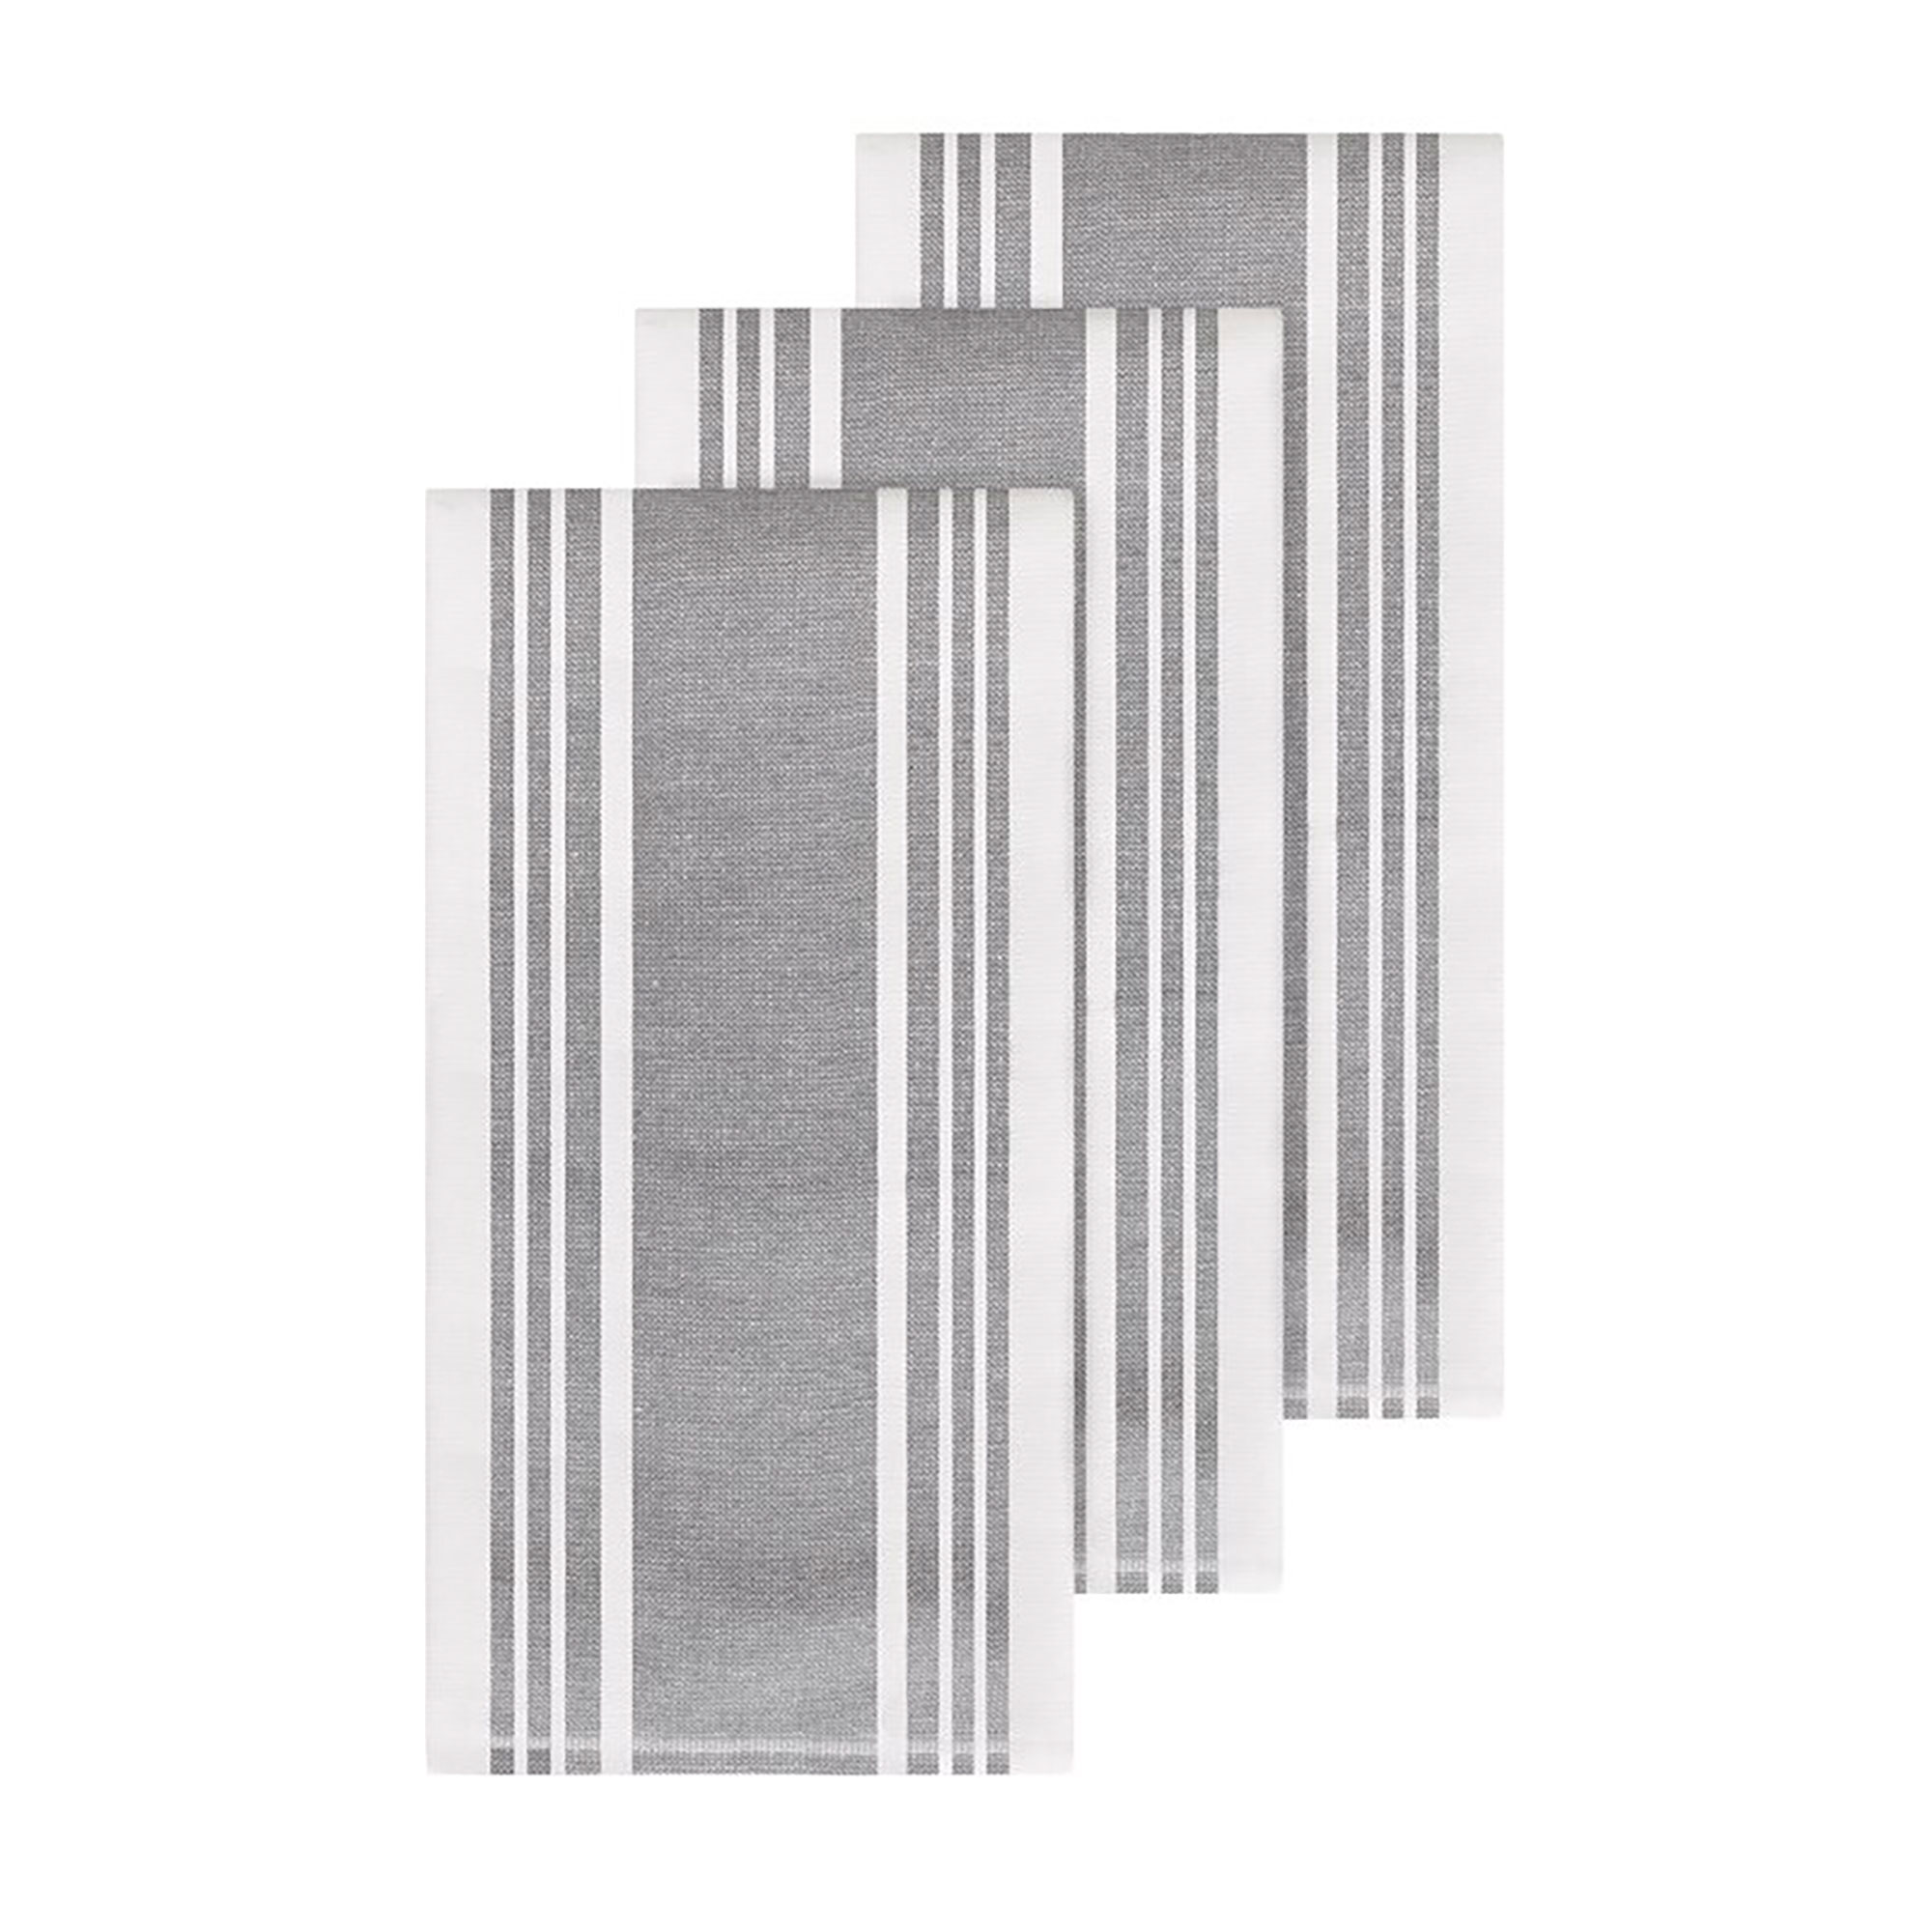 All Clad Dual Woven Stripe Hand Towel Set in gray